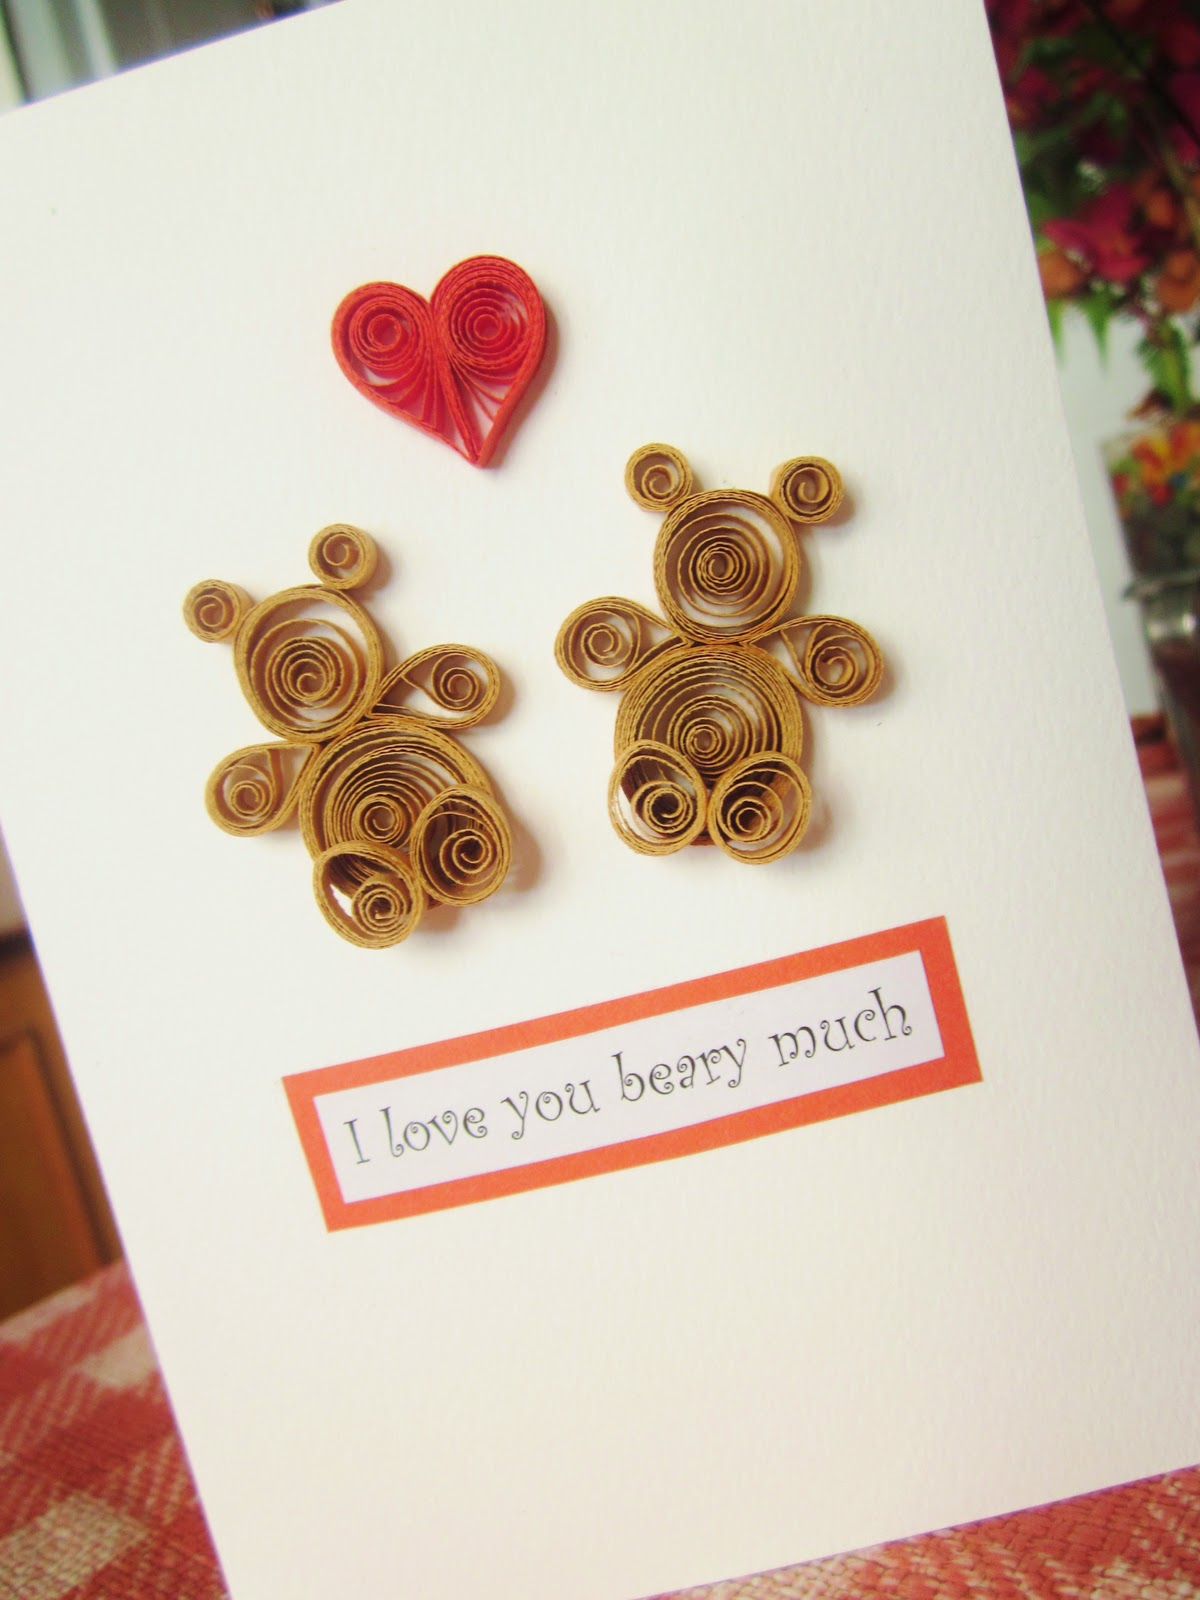 yuenie's fancies  handmade quilled pop up cards